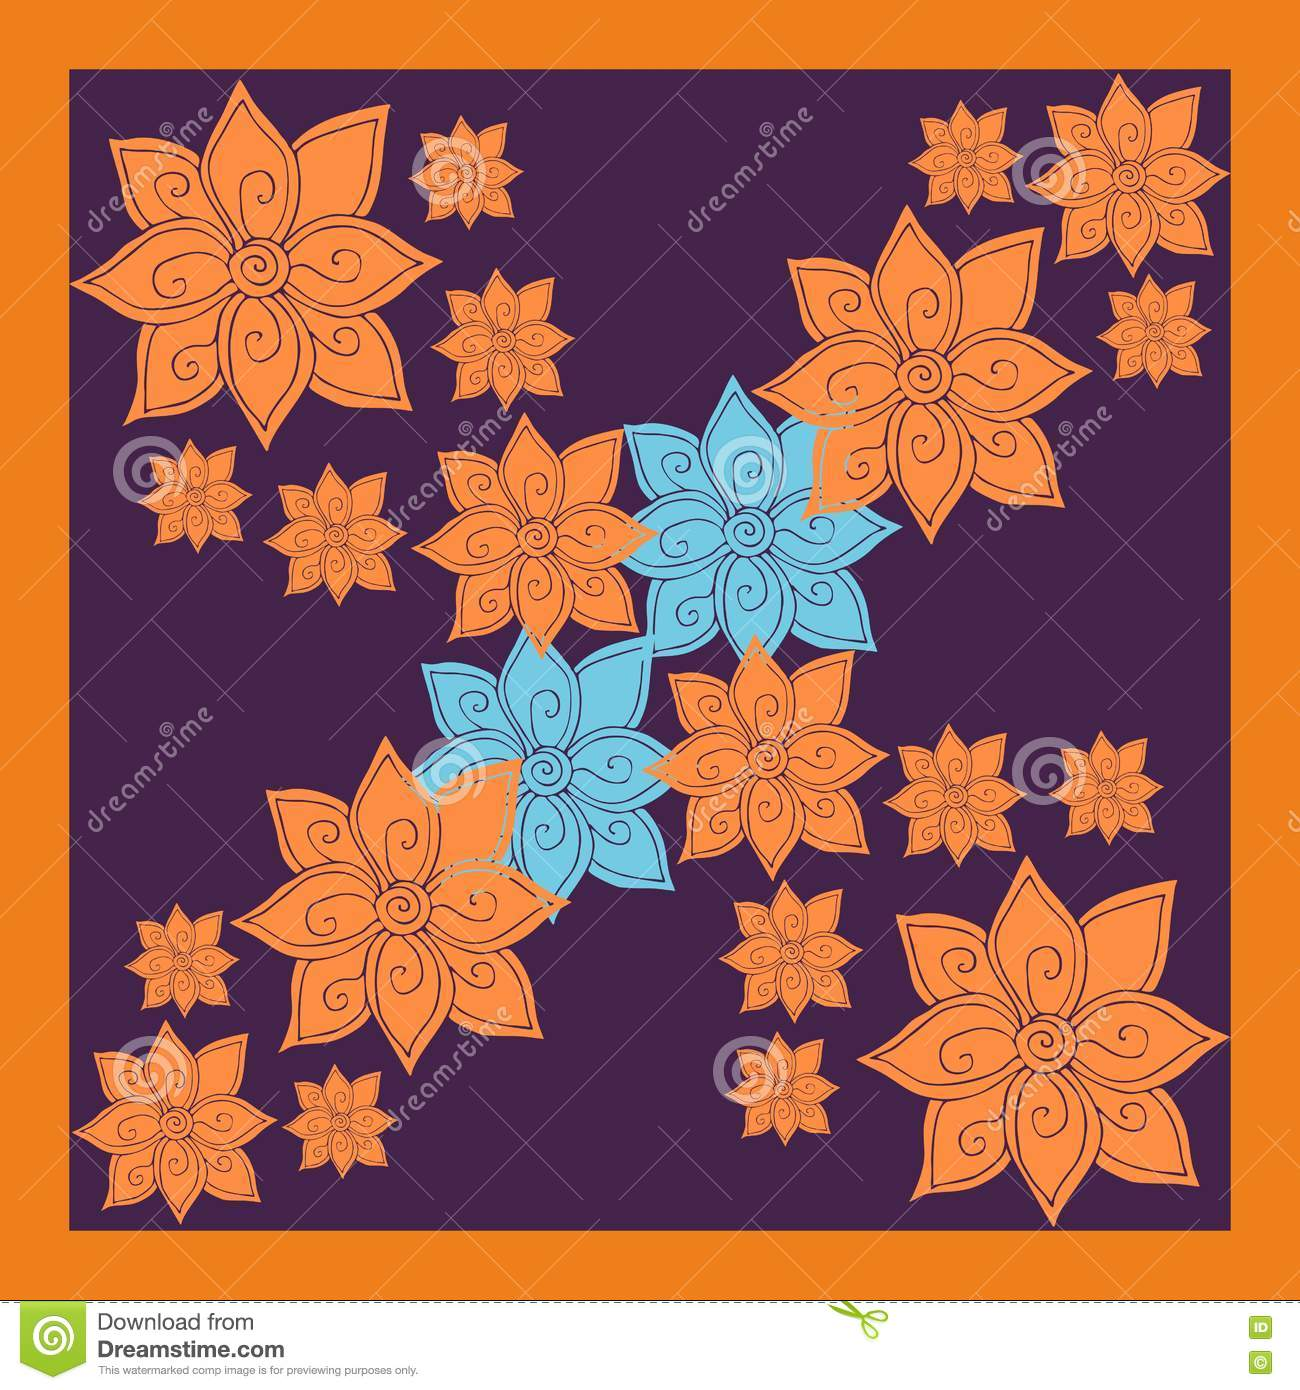 83d6491ad0bb1 Floral silk neck scarf or bandana print with bright orange and blue flowers